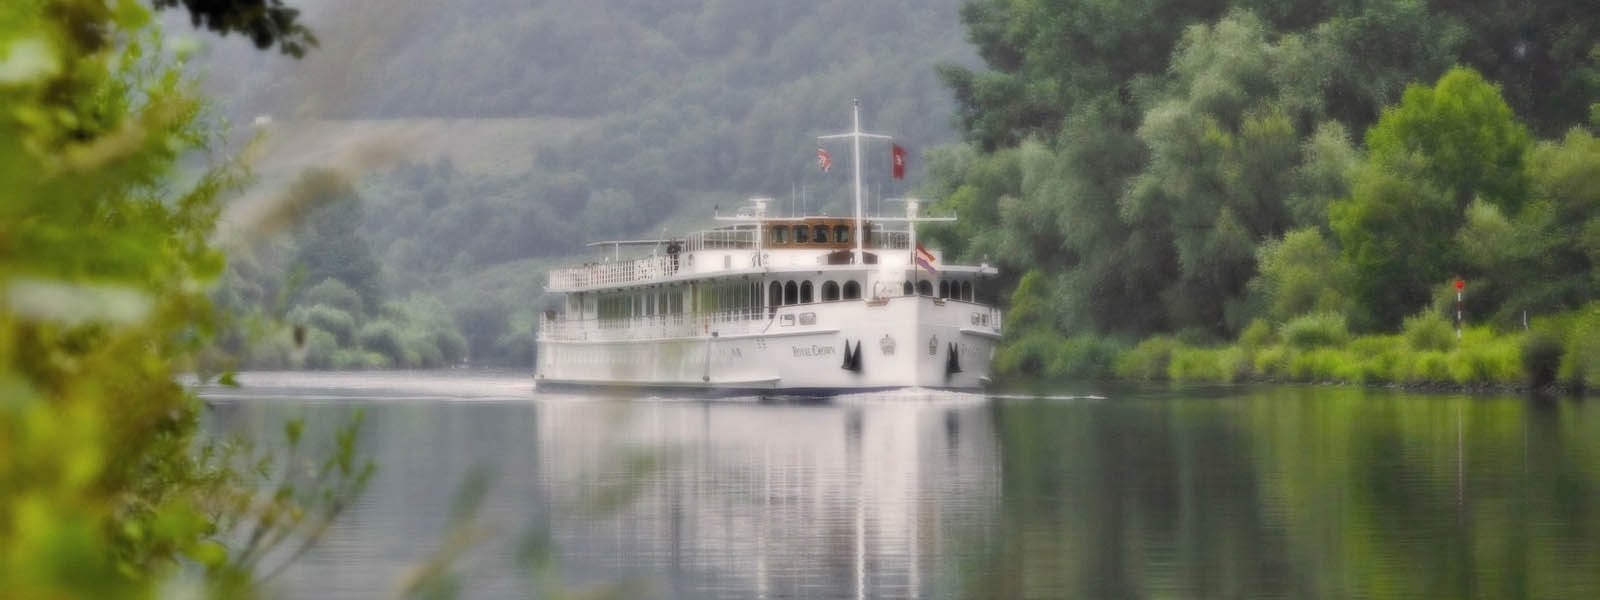 European River Cruises Amsterdam To Budapest 15 Day 15 Cities Teeming River Cruises